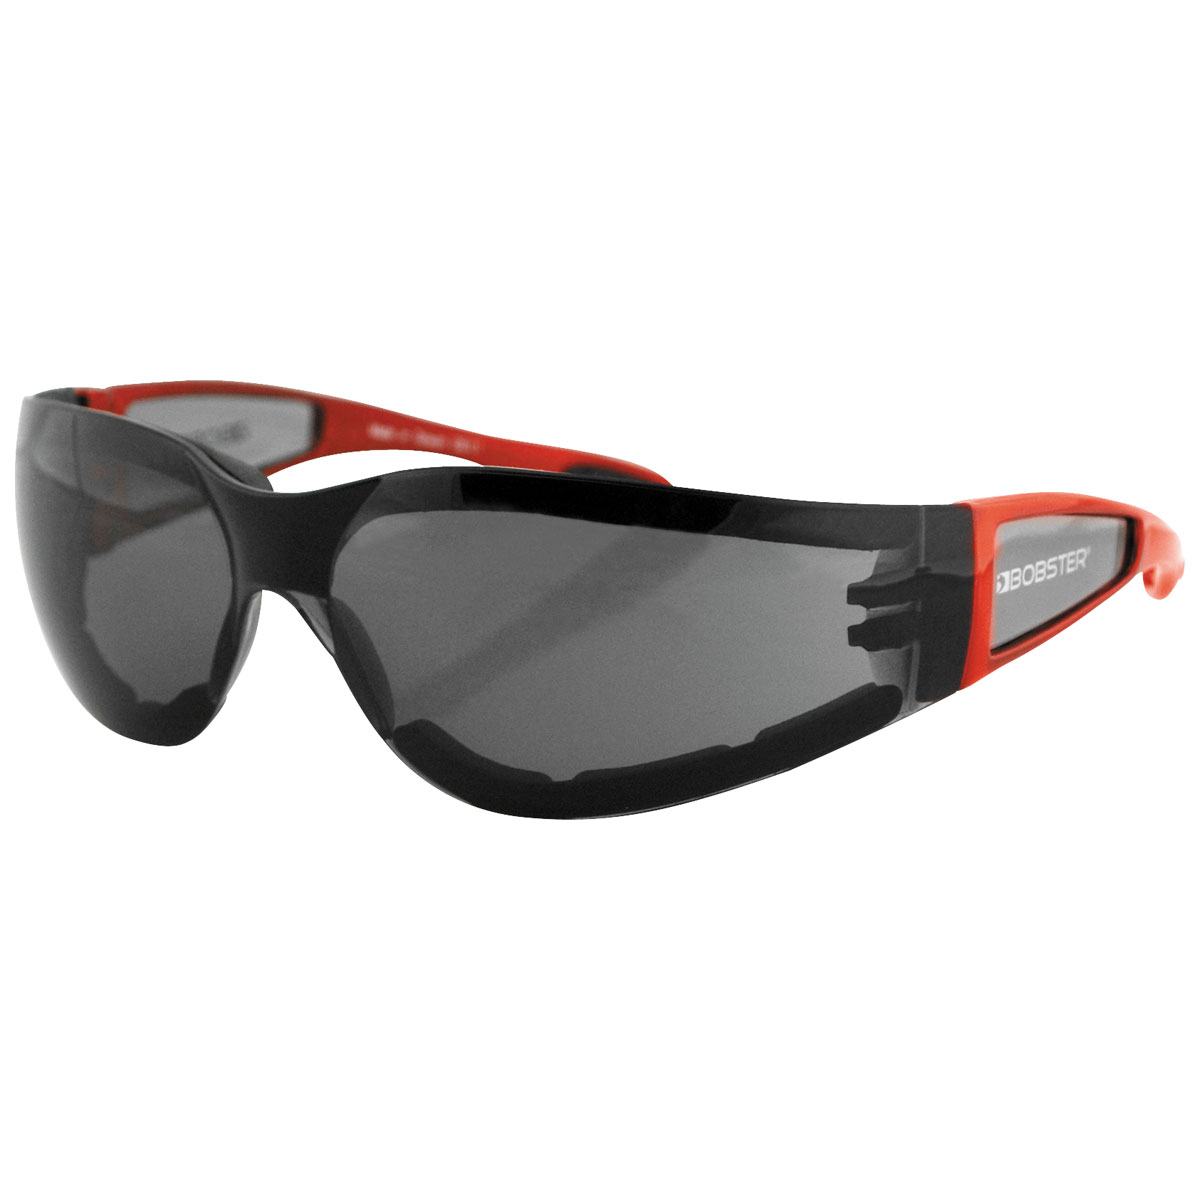 Bobster Shield II Red Sunglasses